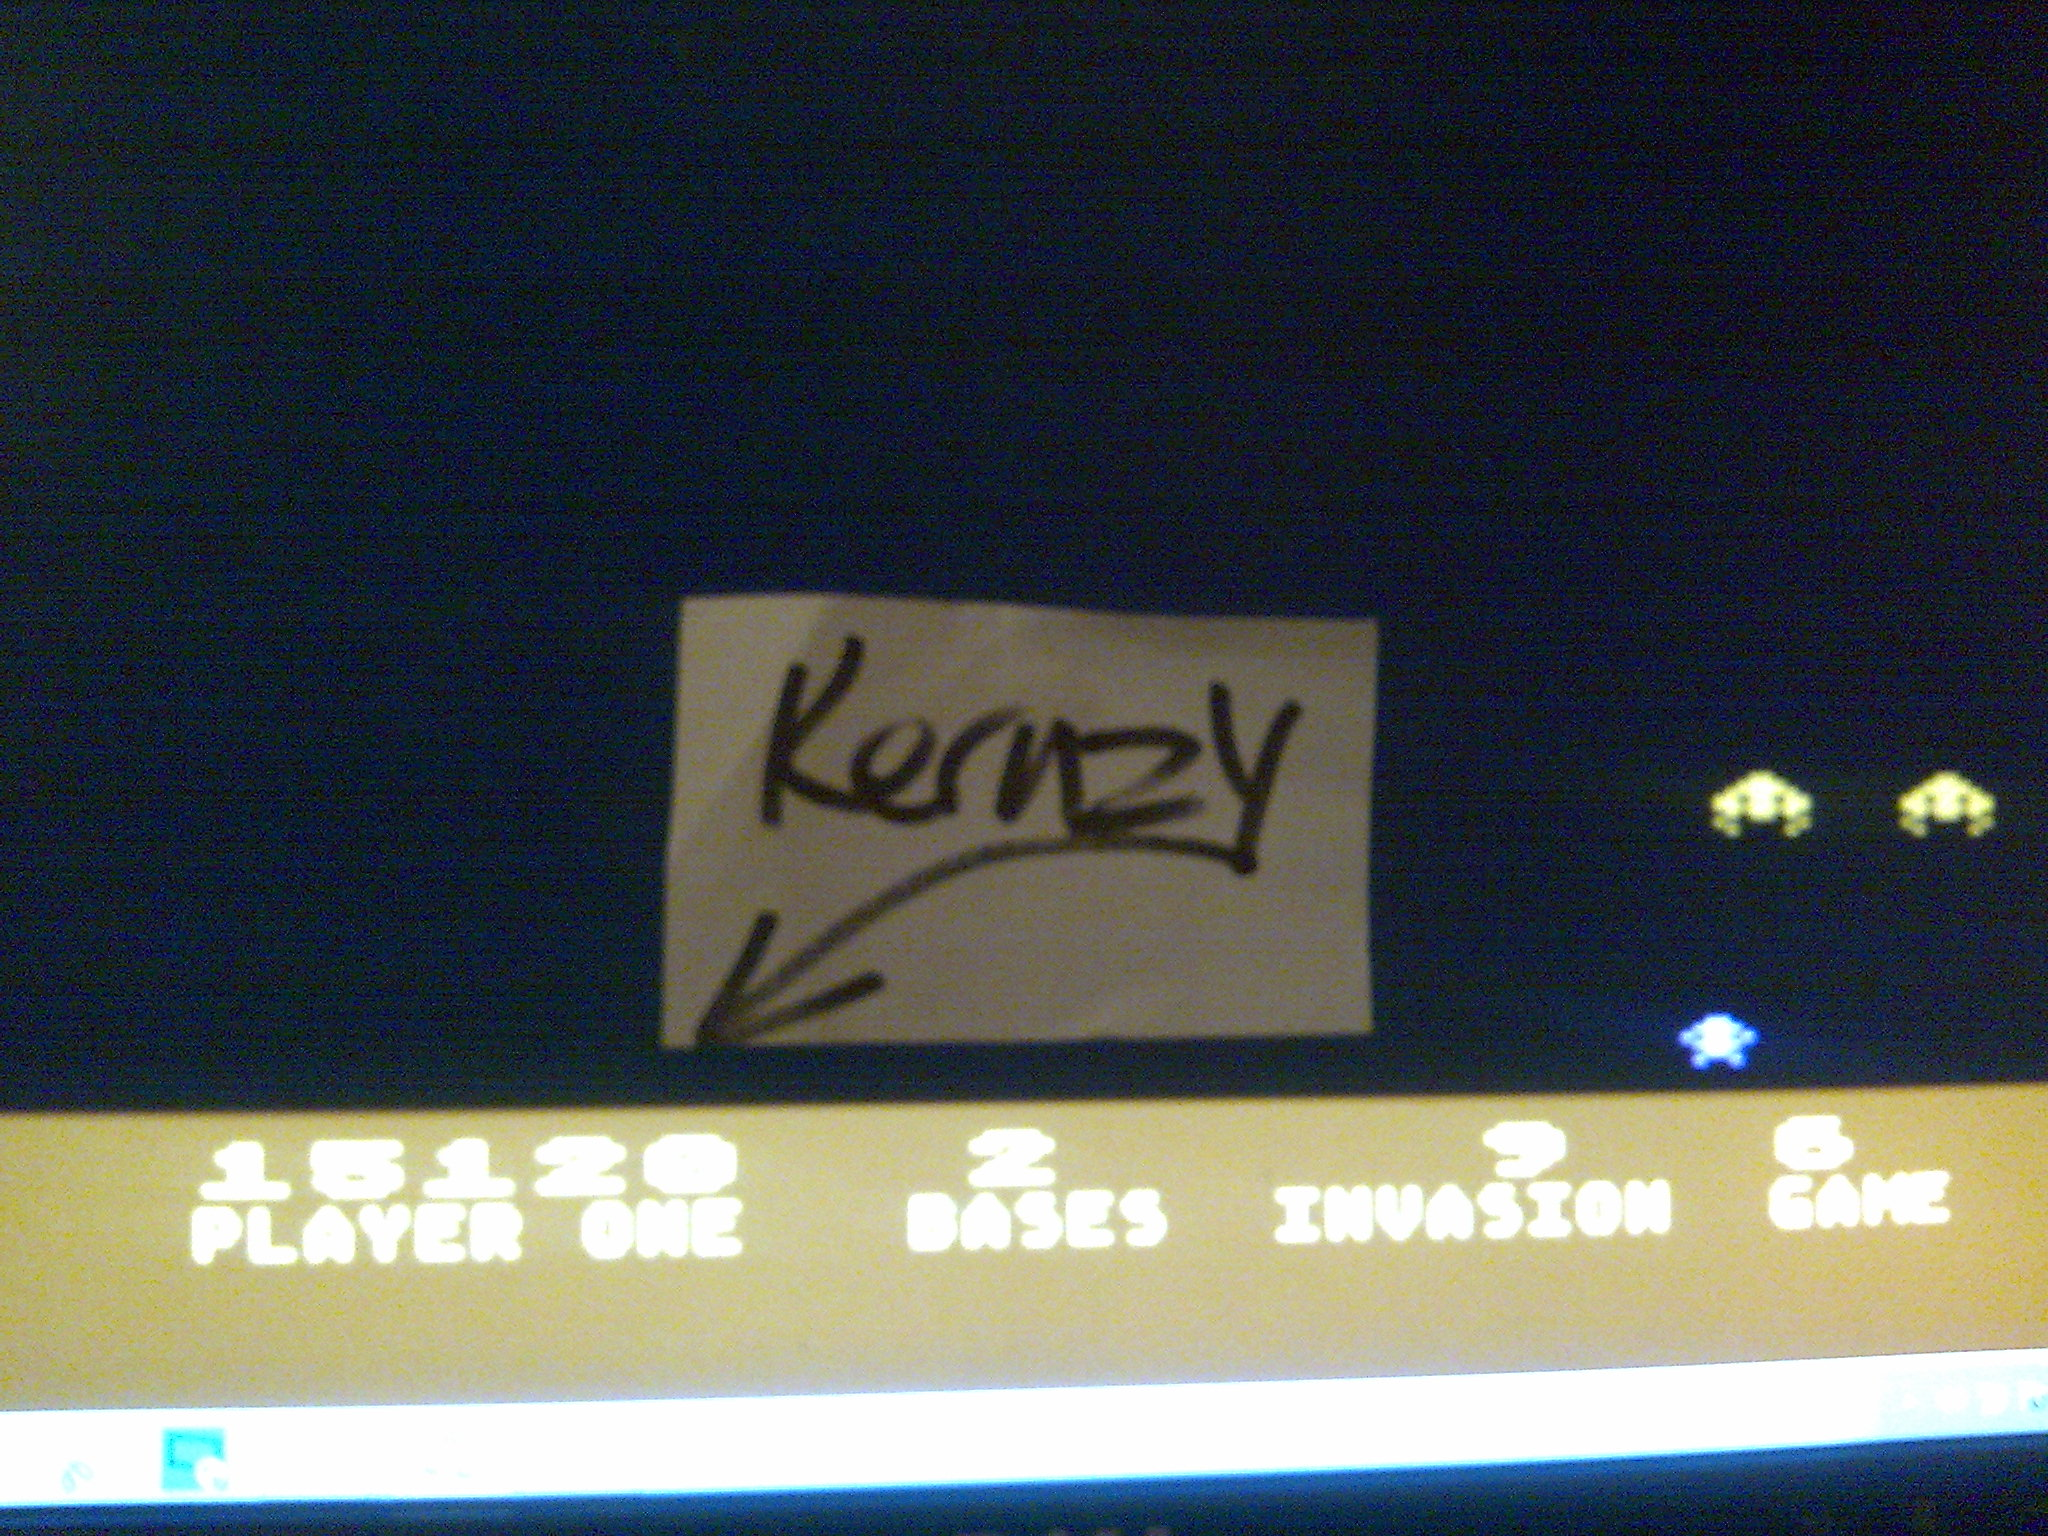 kernzy: Deluxe Invaders: Game 6 (Atari 400/800/XL/XE Emulated) 15,120 points on 2014-10-21 13:01:32